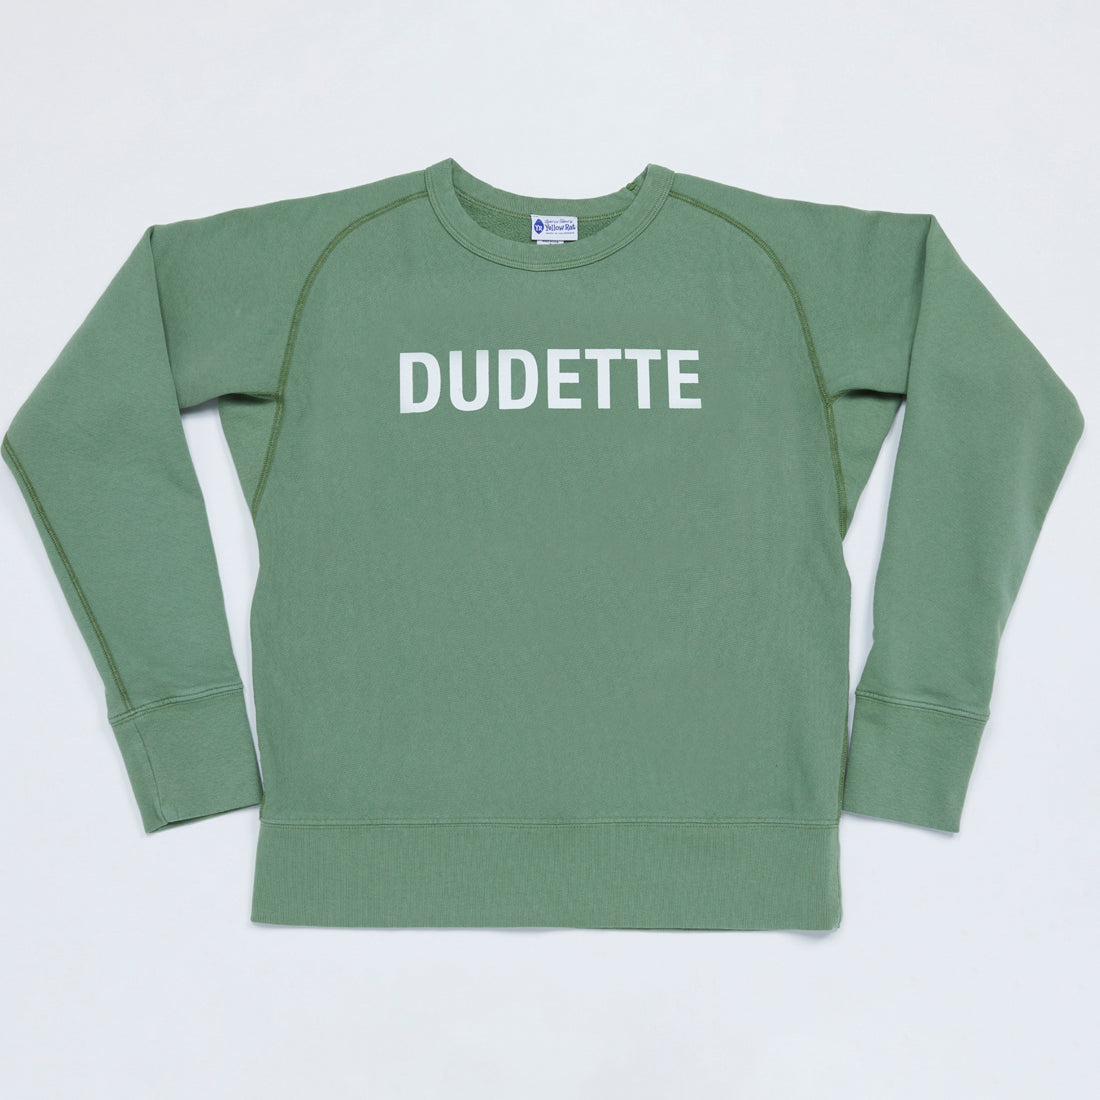 DUDETTE Sweatshirt (Green)